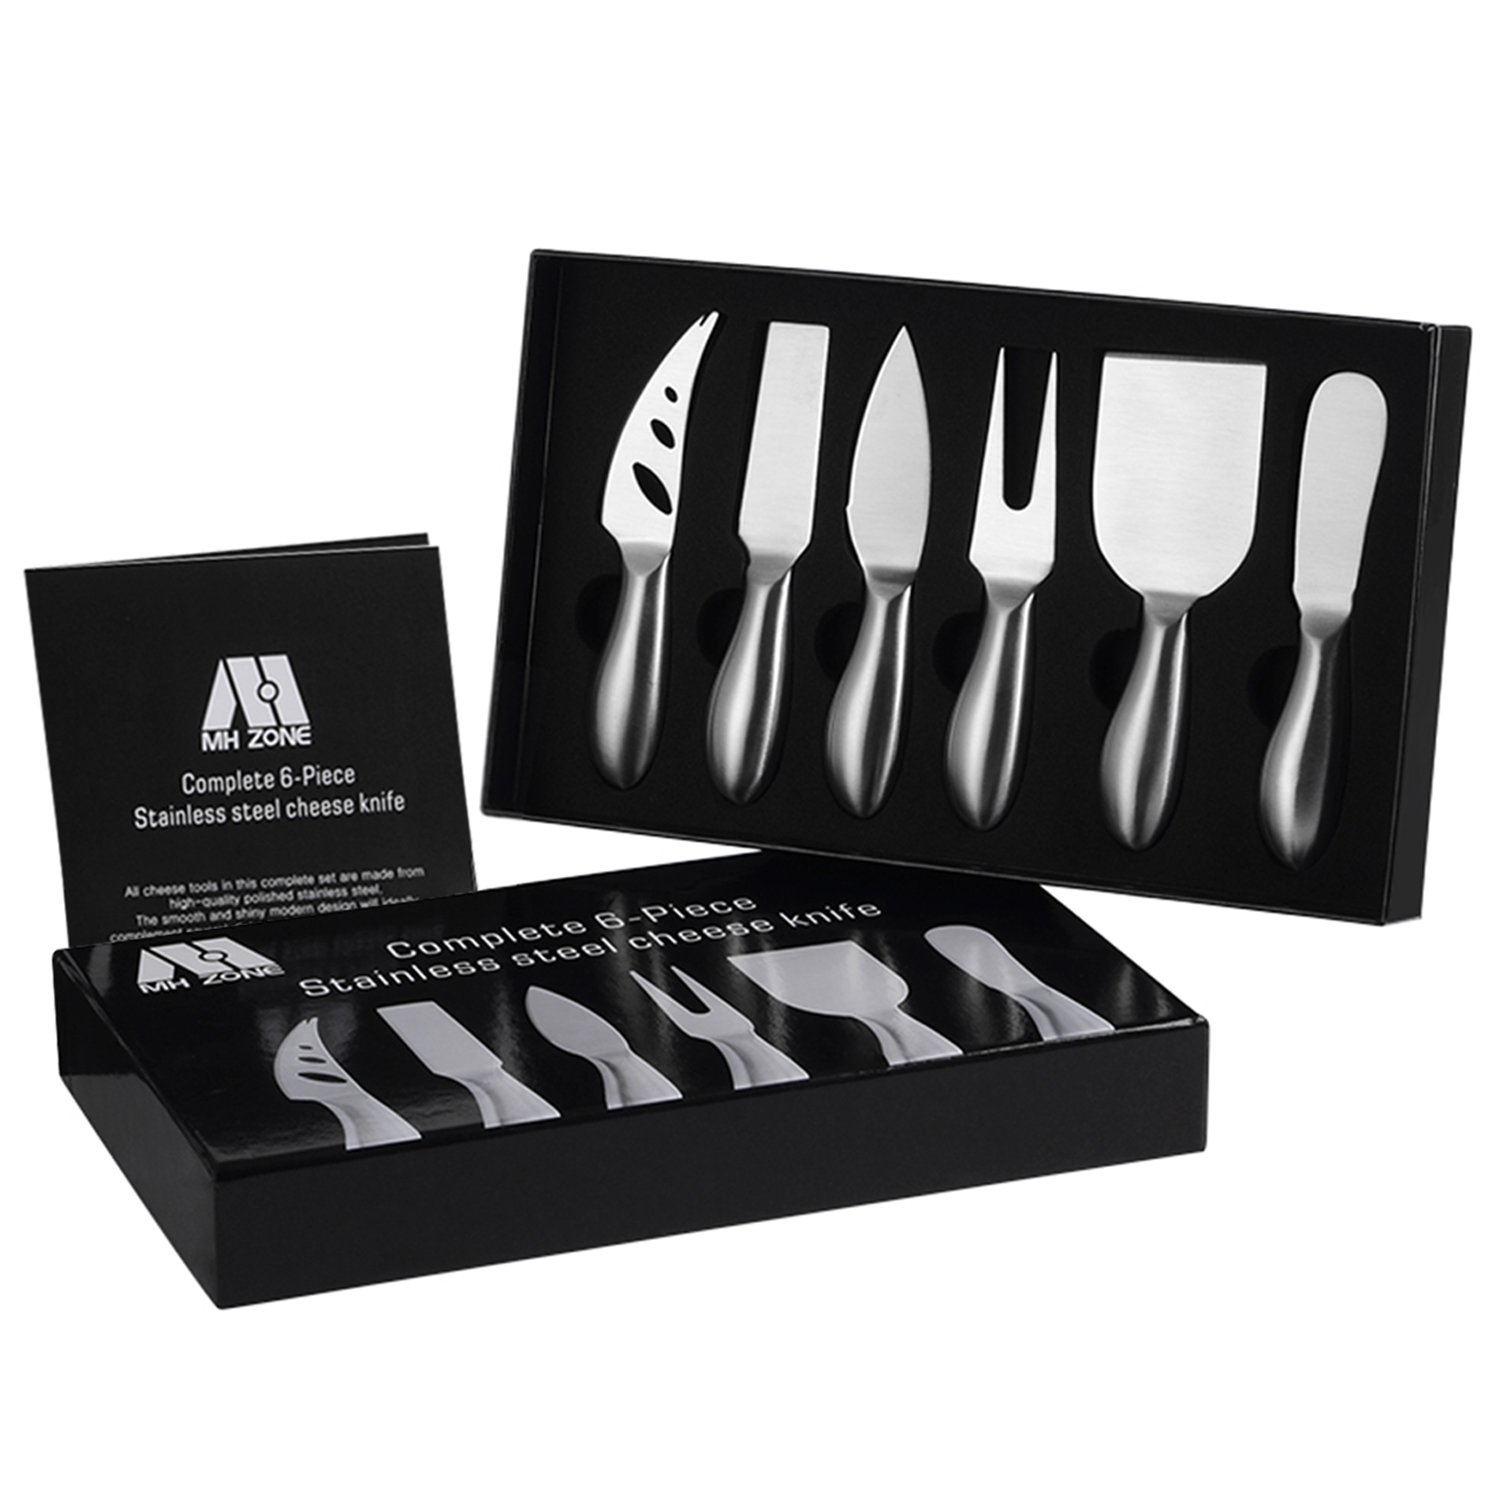 Premium 6-Piece Cheese Knife Set - MH ZONE Complete Stainless Steel Cheese Knives Gift Knives Sets Collection, Suit for the Wedding, Lover, Elders, Children and Friends, Perfect Gift